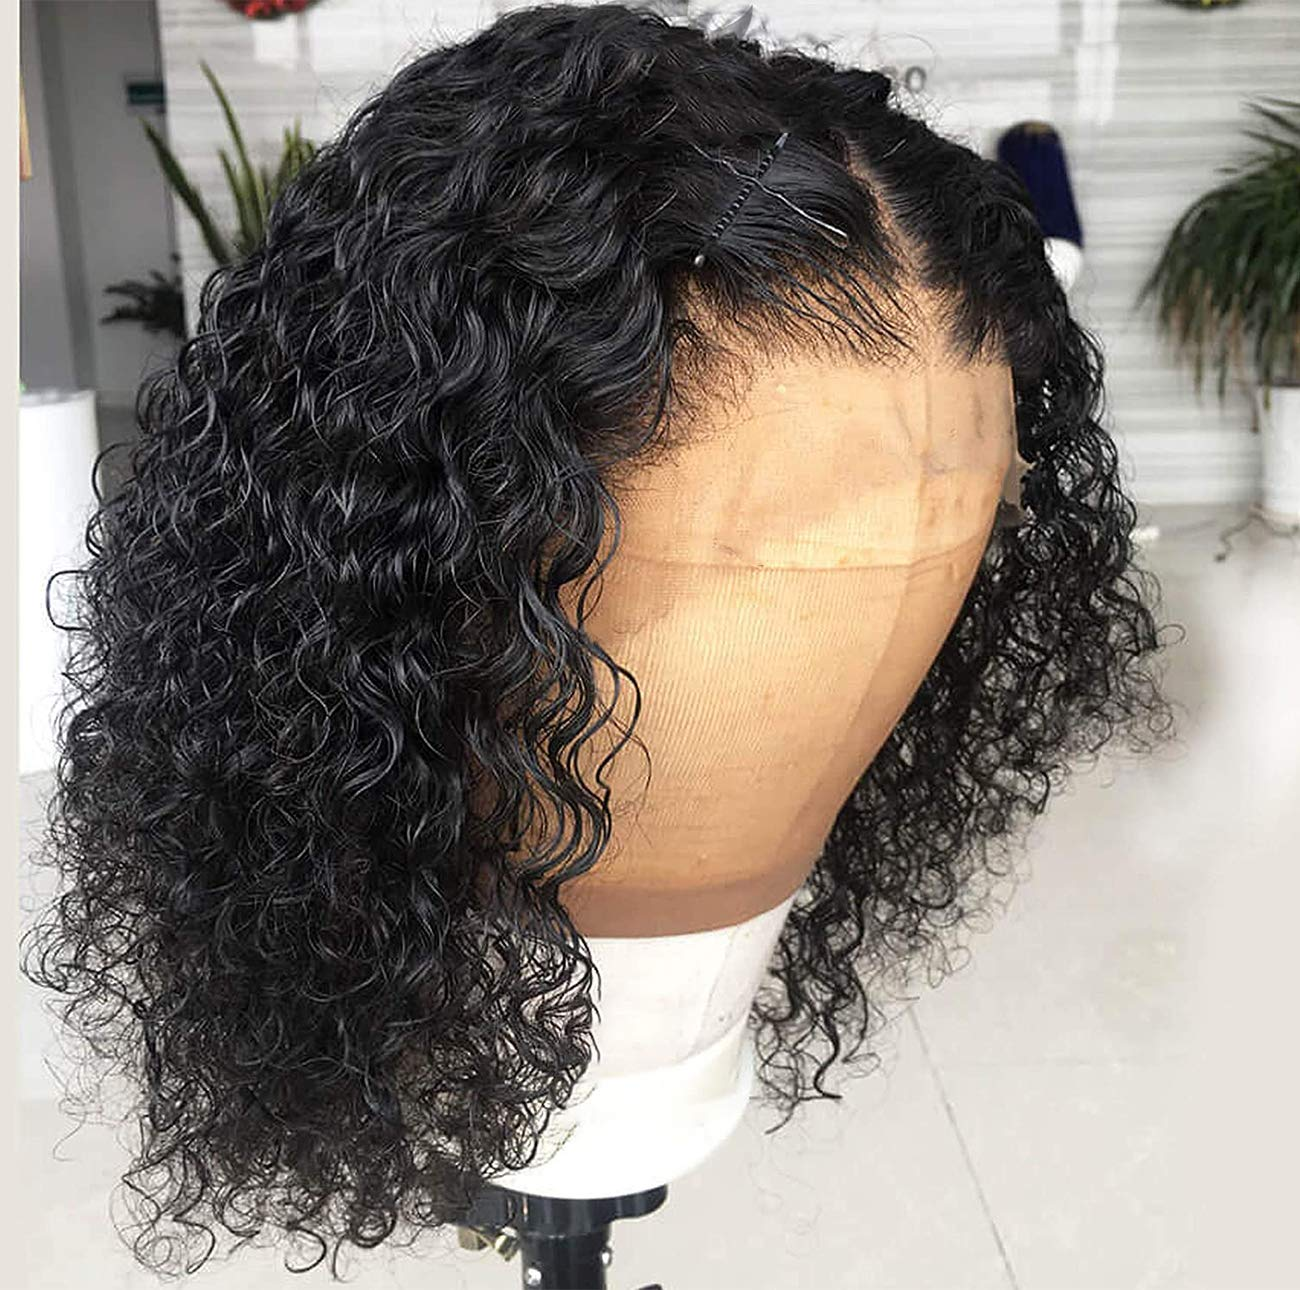 13x4 Deep Wave Lace Front Wigs with Baby Hair Pre Plucked Human Hair Wigs for Black Women Bob Curly Wig 12 Inch